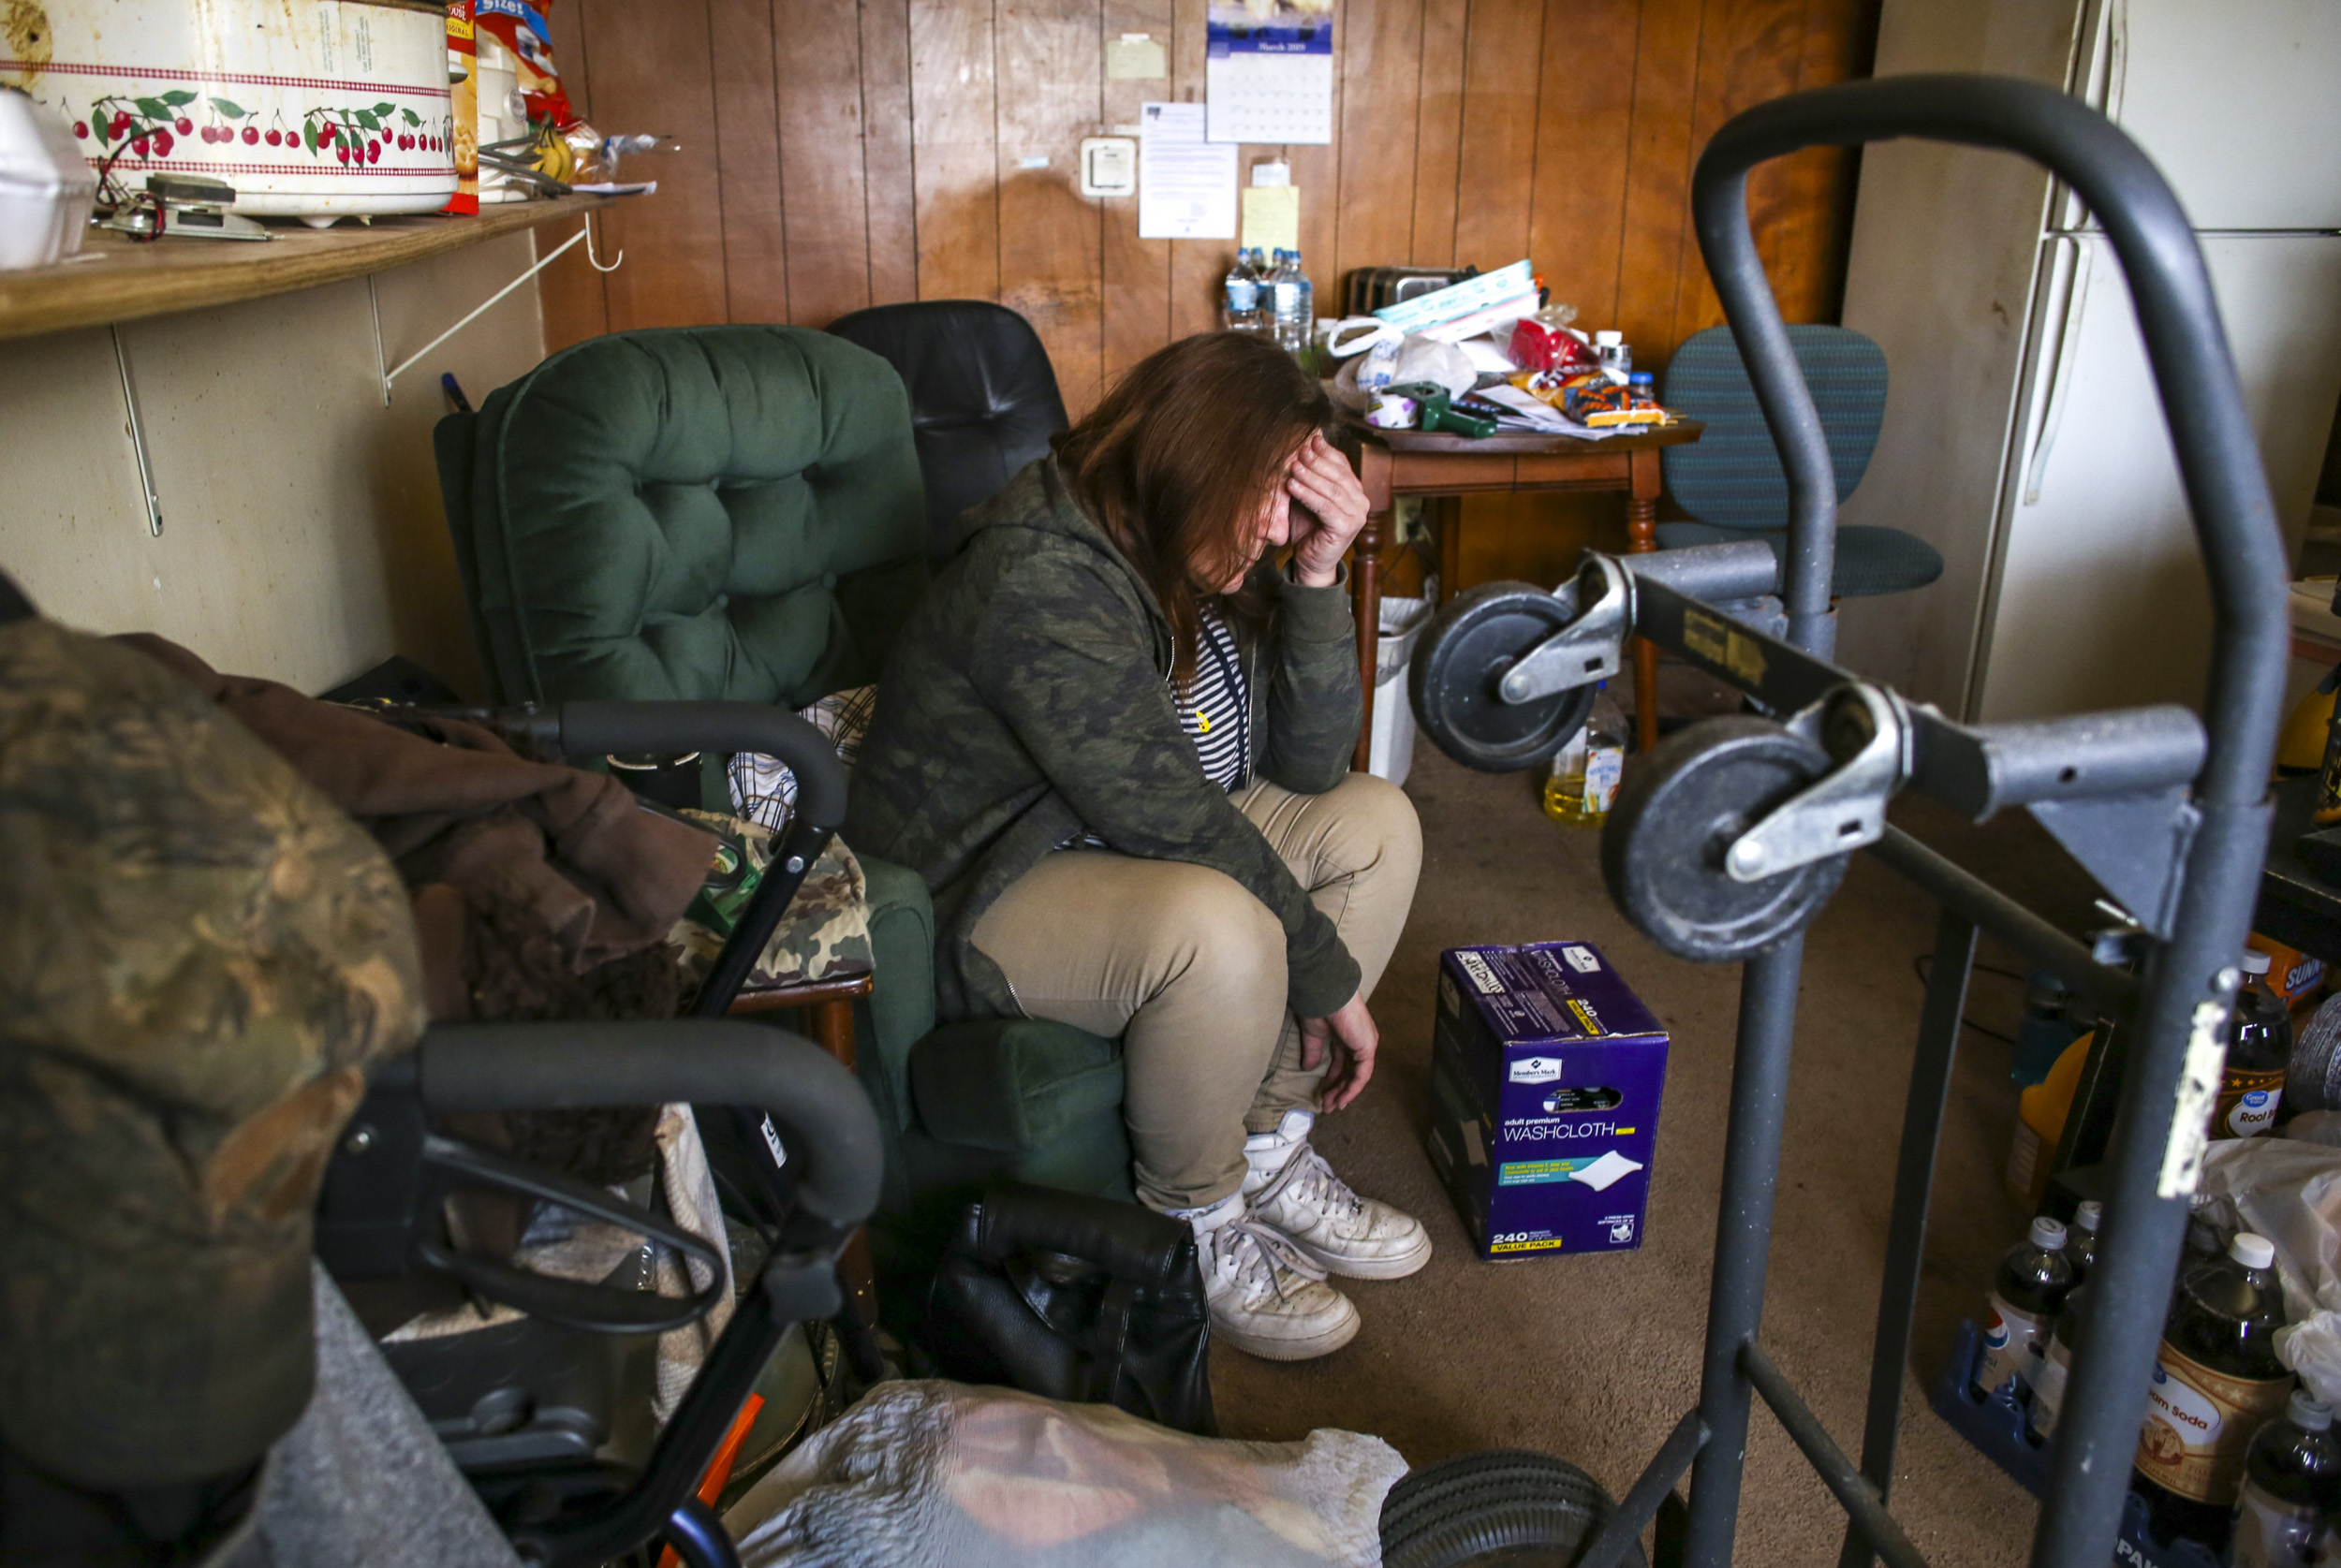 Rebecca Gohn, rests her head in her hand while taking a break from packing up her boyfriend's father's apartment in Davenport, Wednesday, March 6, 2019.